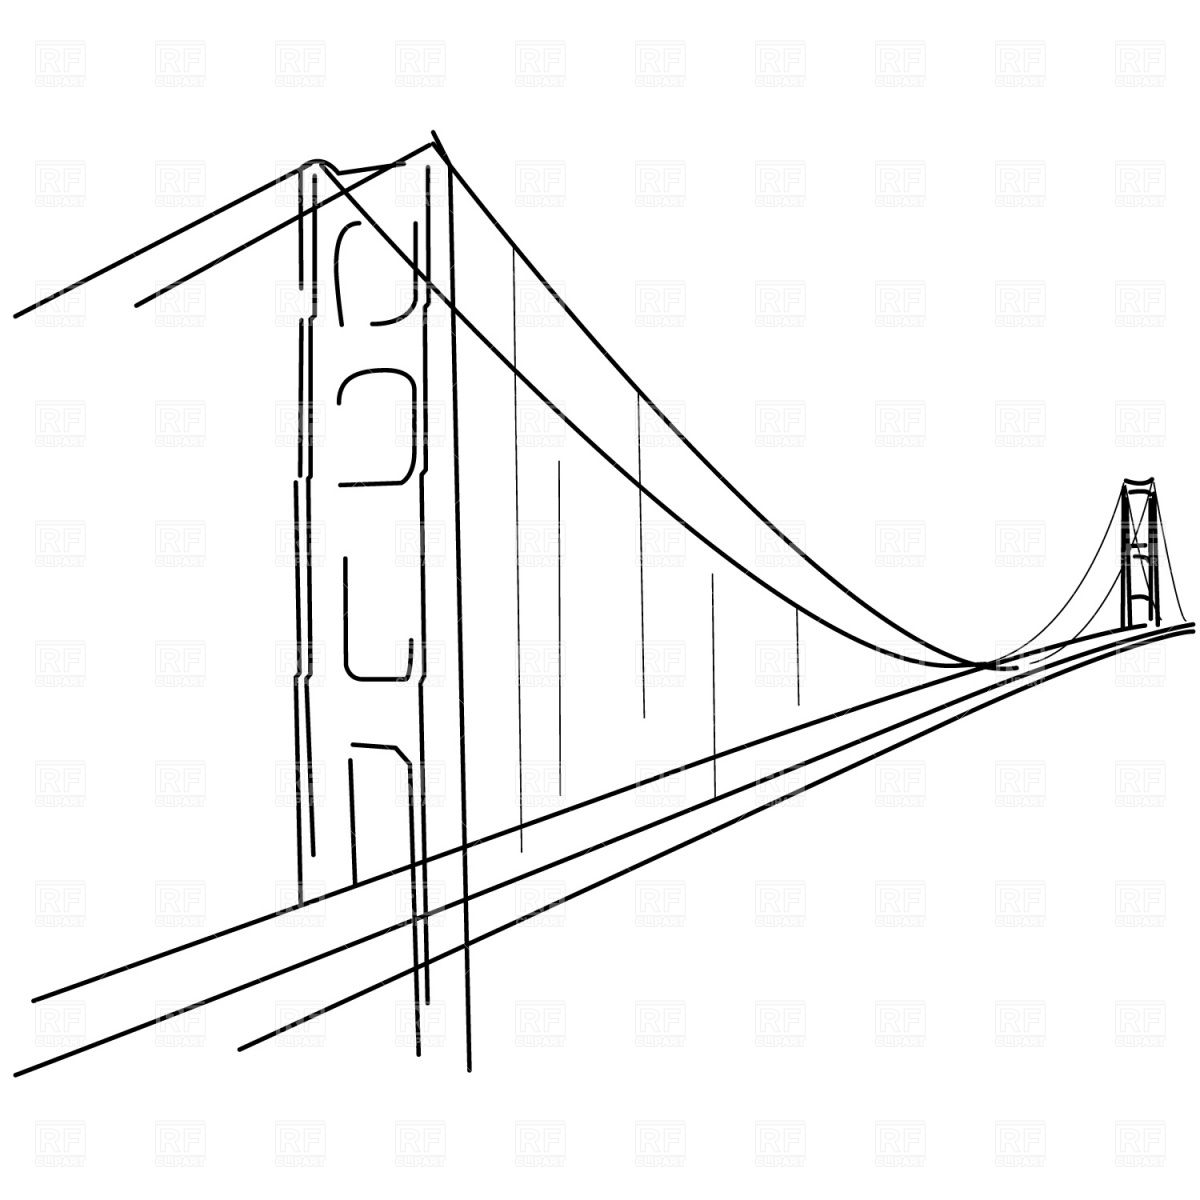 Symbolic Golden Gate Bridge Silhouette Vector Image Artwork Diagram Of The Google Result For Http Imgrfclipartcom